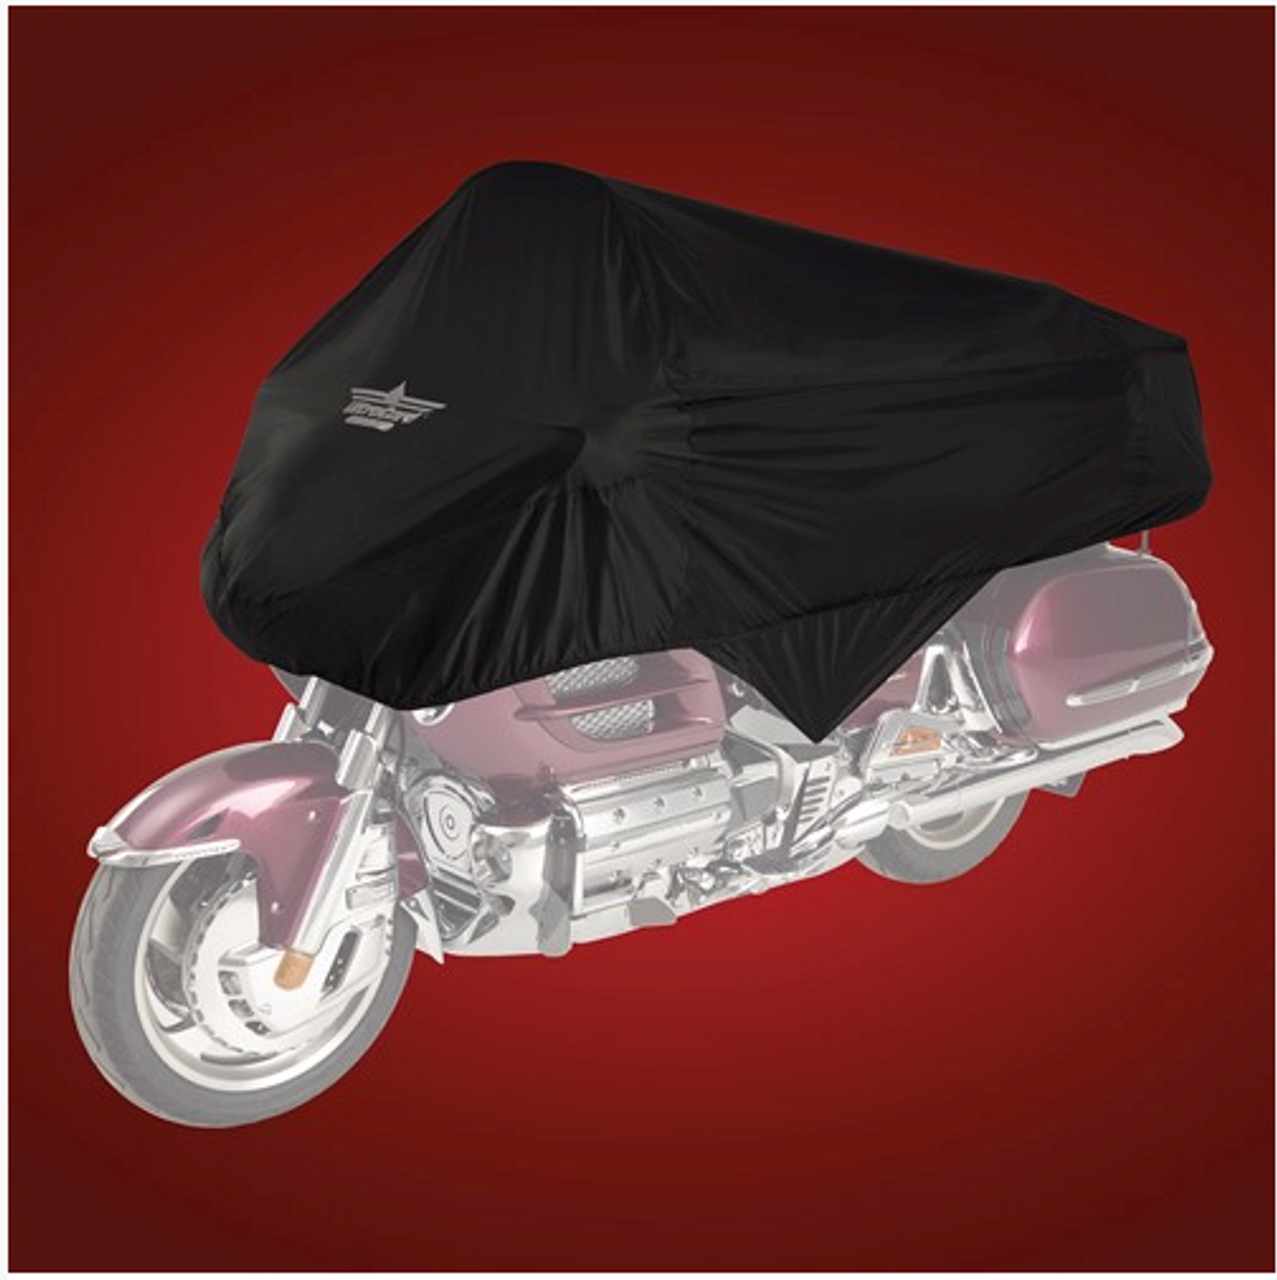 This Black Touring Half Cover will fit GL1200, GL1500, GL1800, Valkyrie, Yamaha, Venture, Harley Classics, etc (see fitment chart for details). The Classic Series line of covers offers exceptional value without compromising the features you have come to expect from UltraGard®.